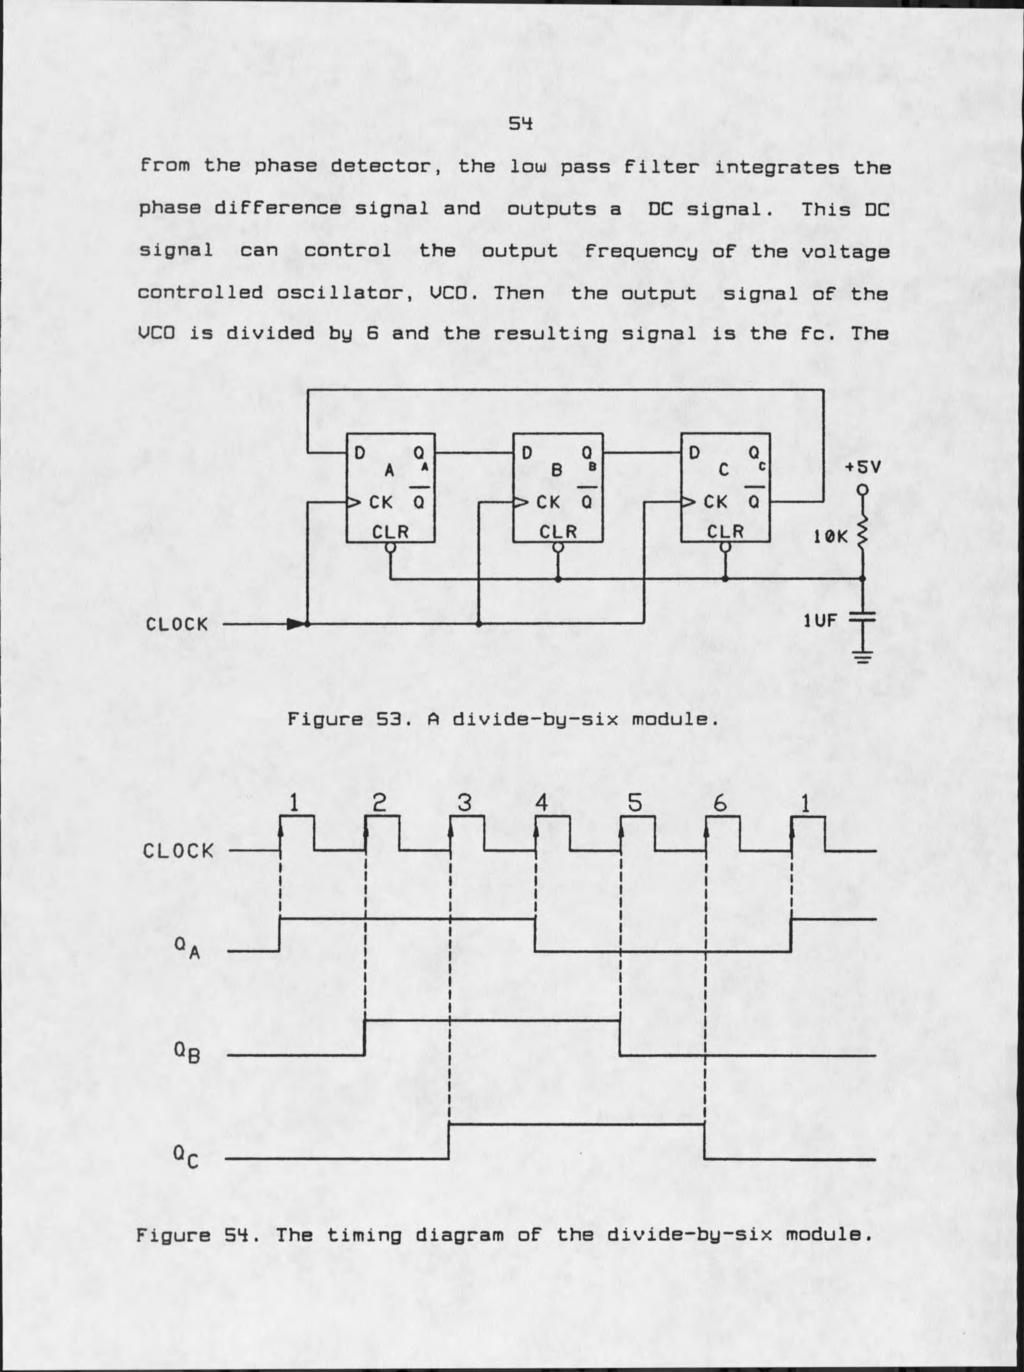 Firing Circuits For Three Phase Power Electronic Pdf Lm741 Simple Dc Amplifier Can Be Added To Afc Circuit Of Fm Tuner 54 From The Detector Low Pass Filter Integrates Difference Signal And